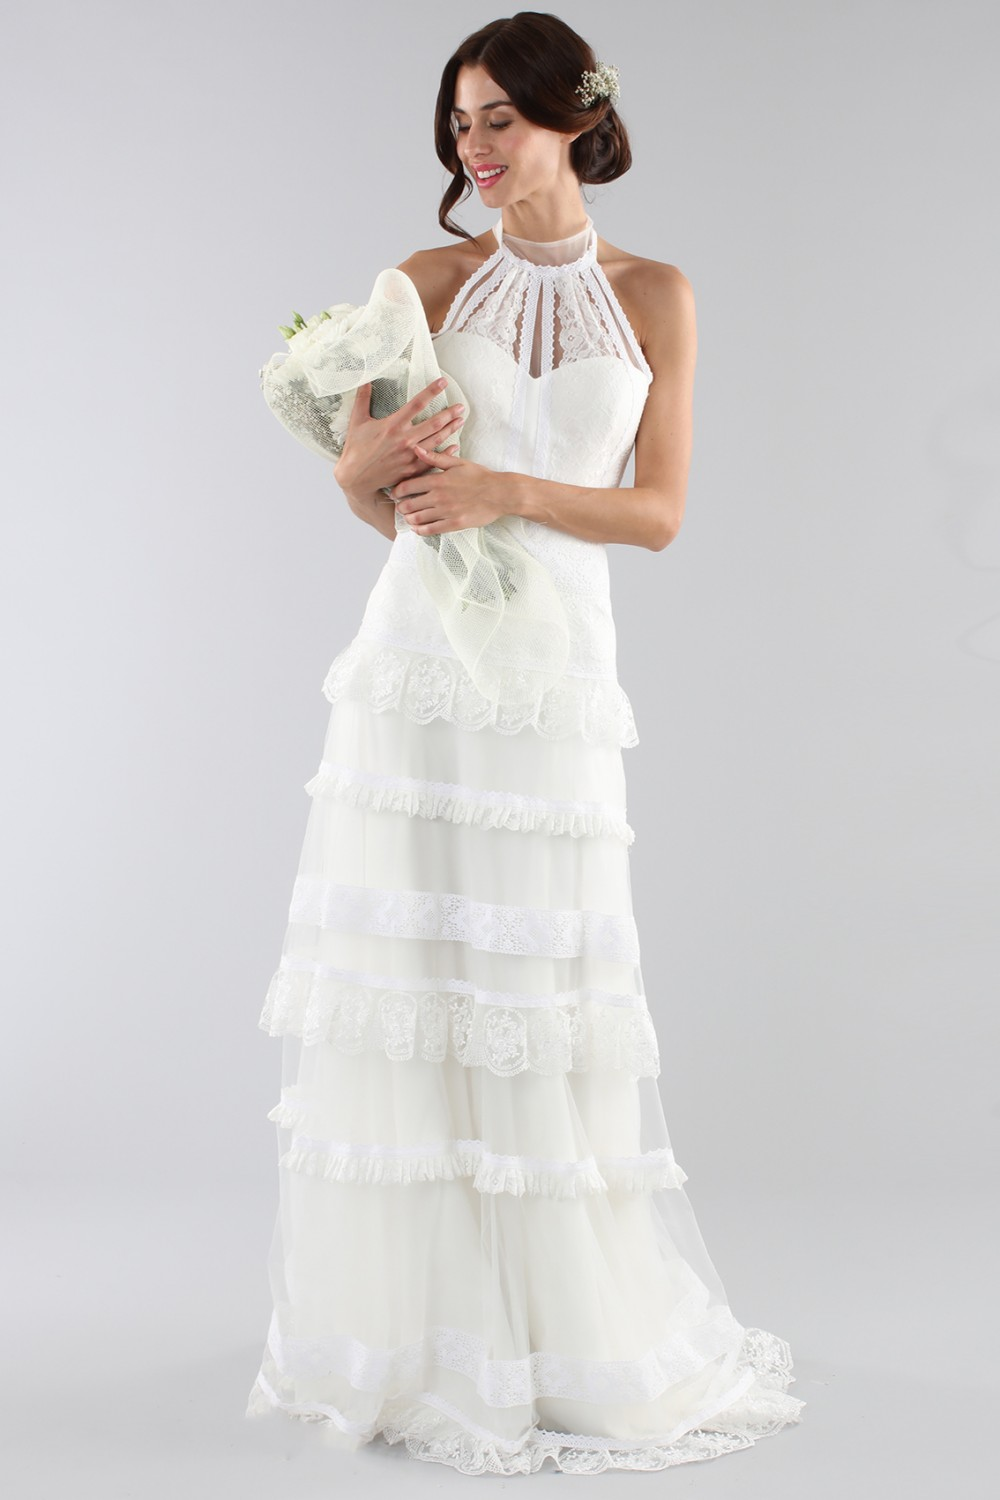 Lace wedding dress with american collar